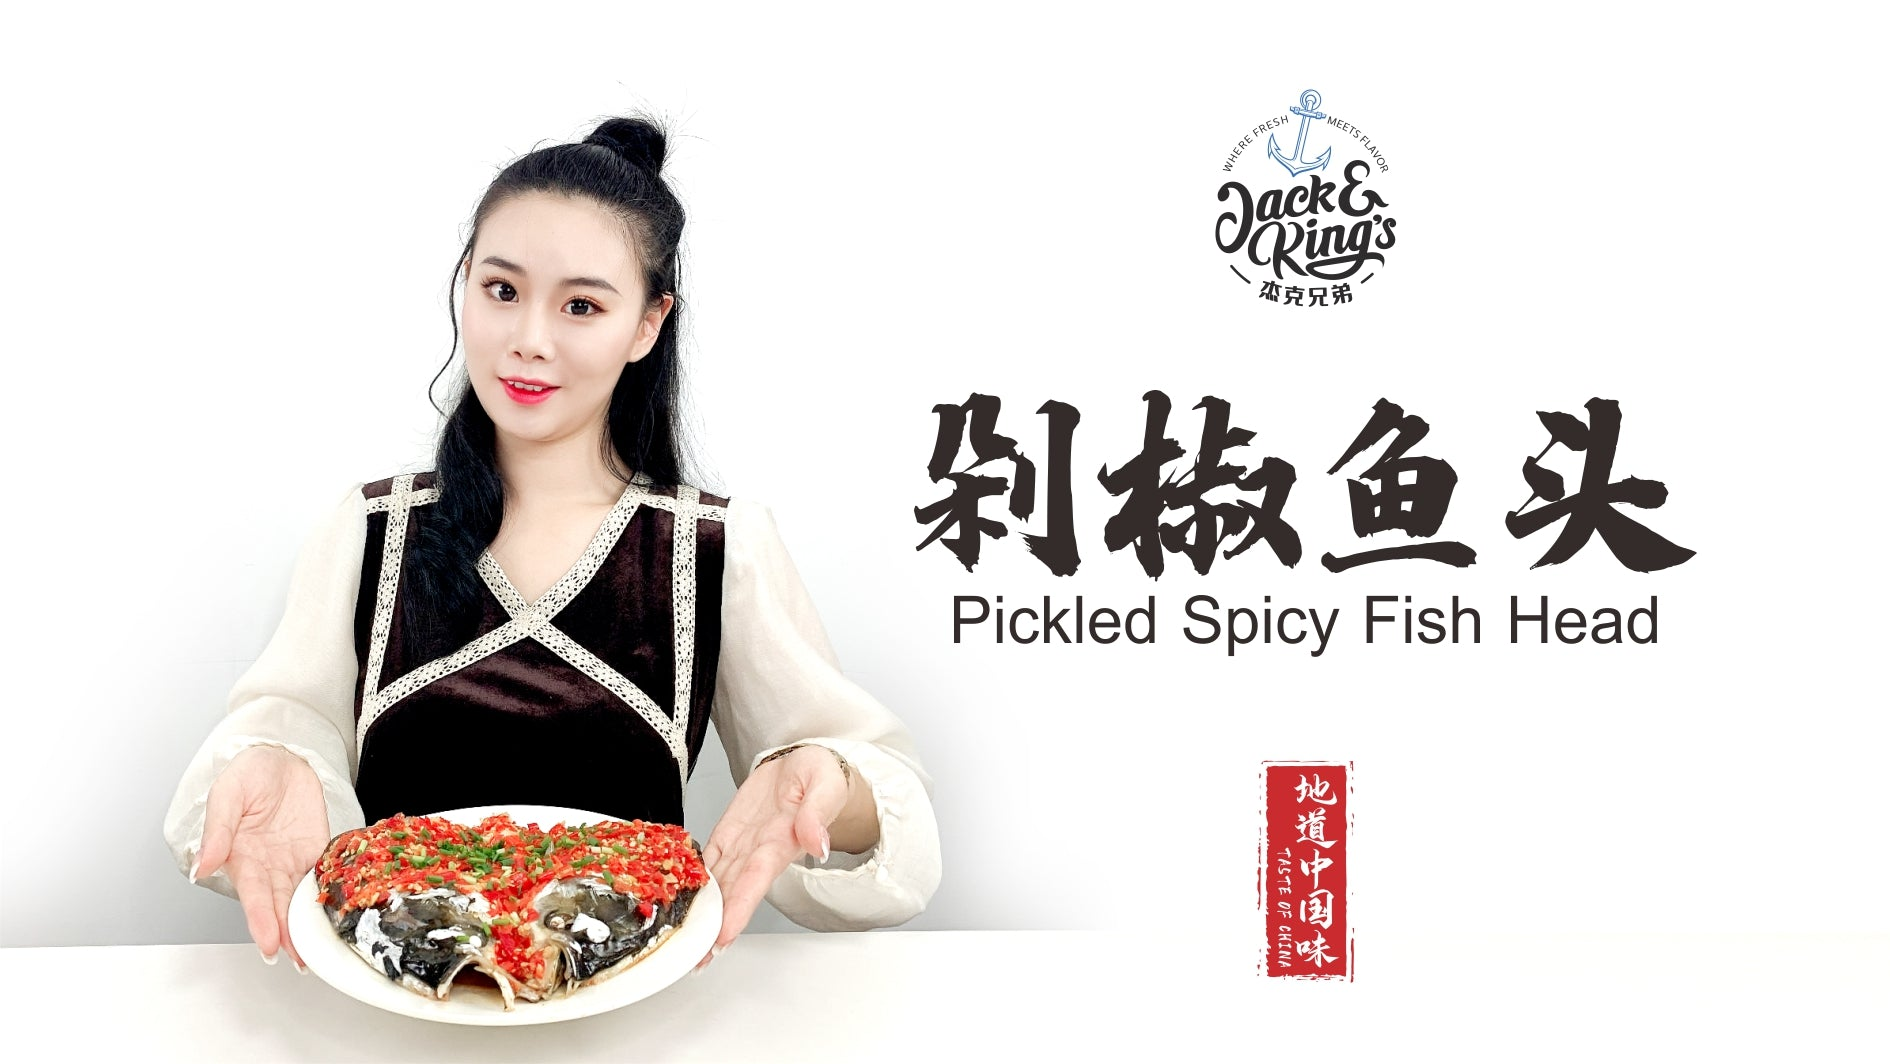 Jack & King's Spicy Pickle Fish Head